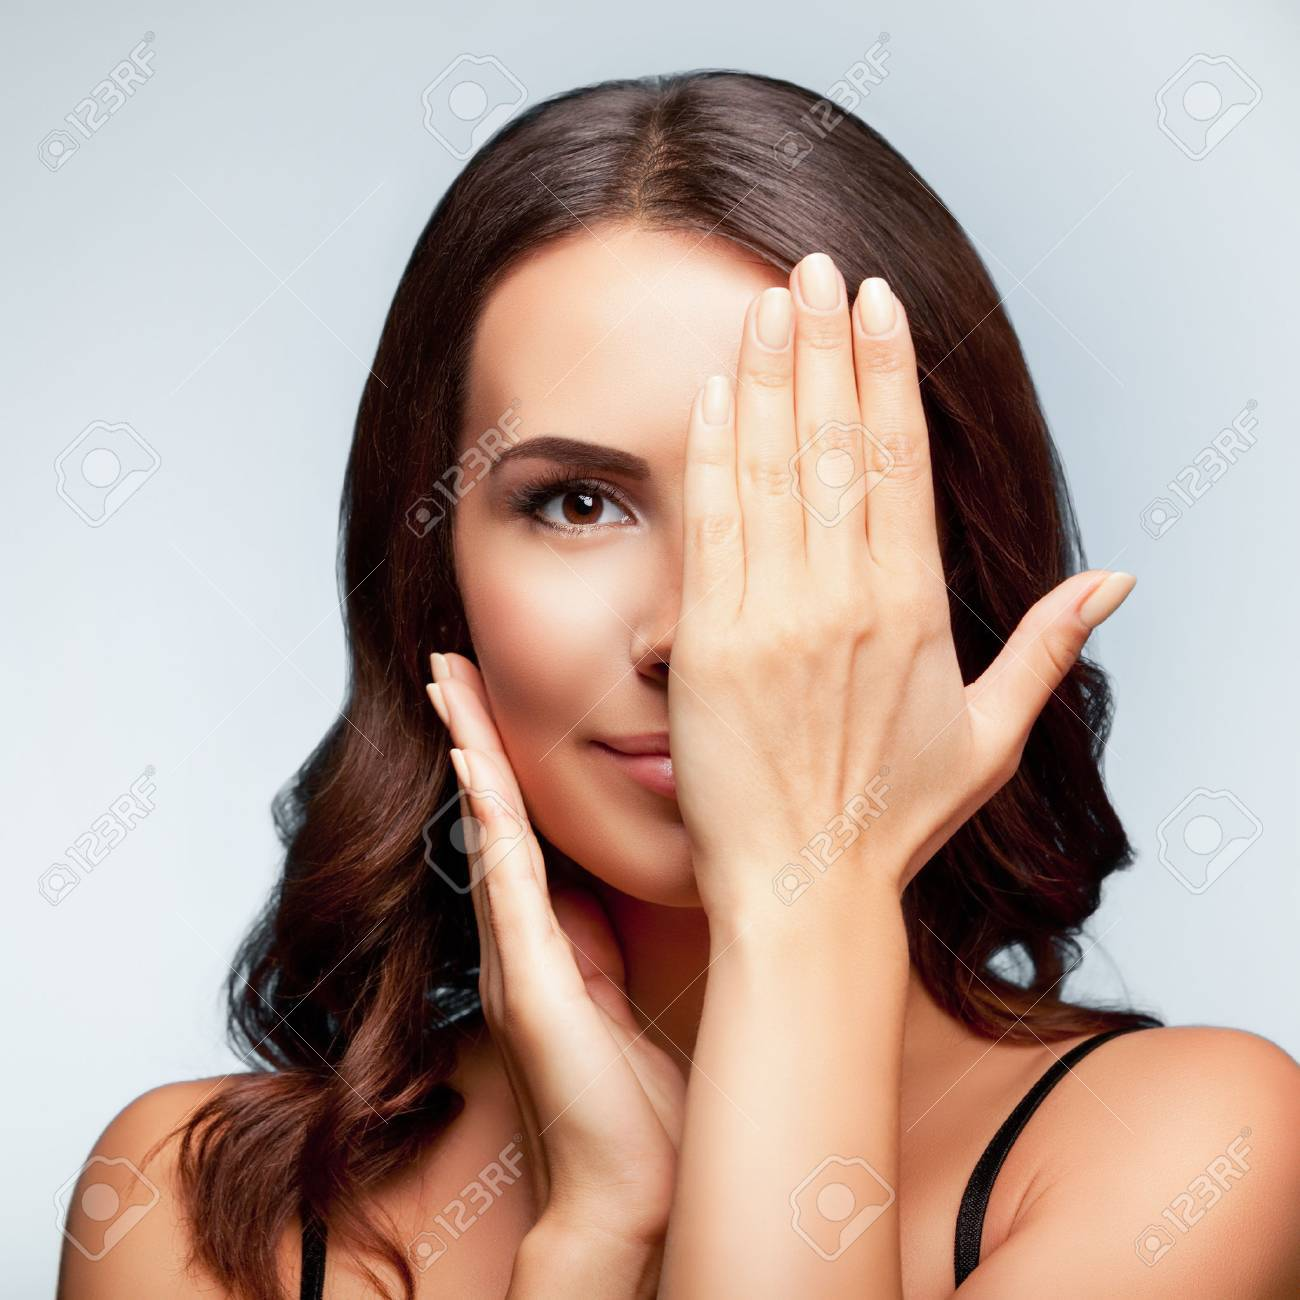 smiling young woman, with eye, clossed by hand, covering part of her face, over bright grey background, square composition Banque d'images - 44672750